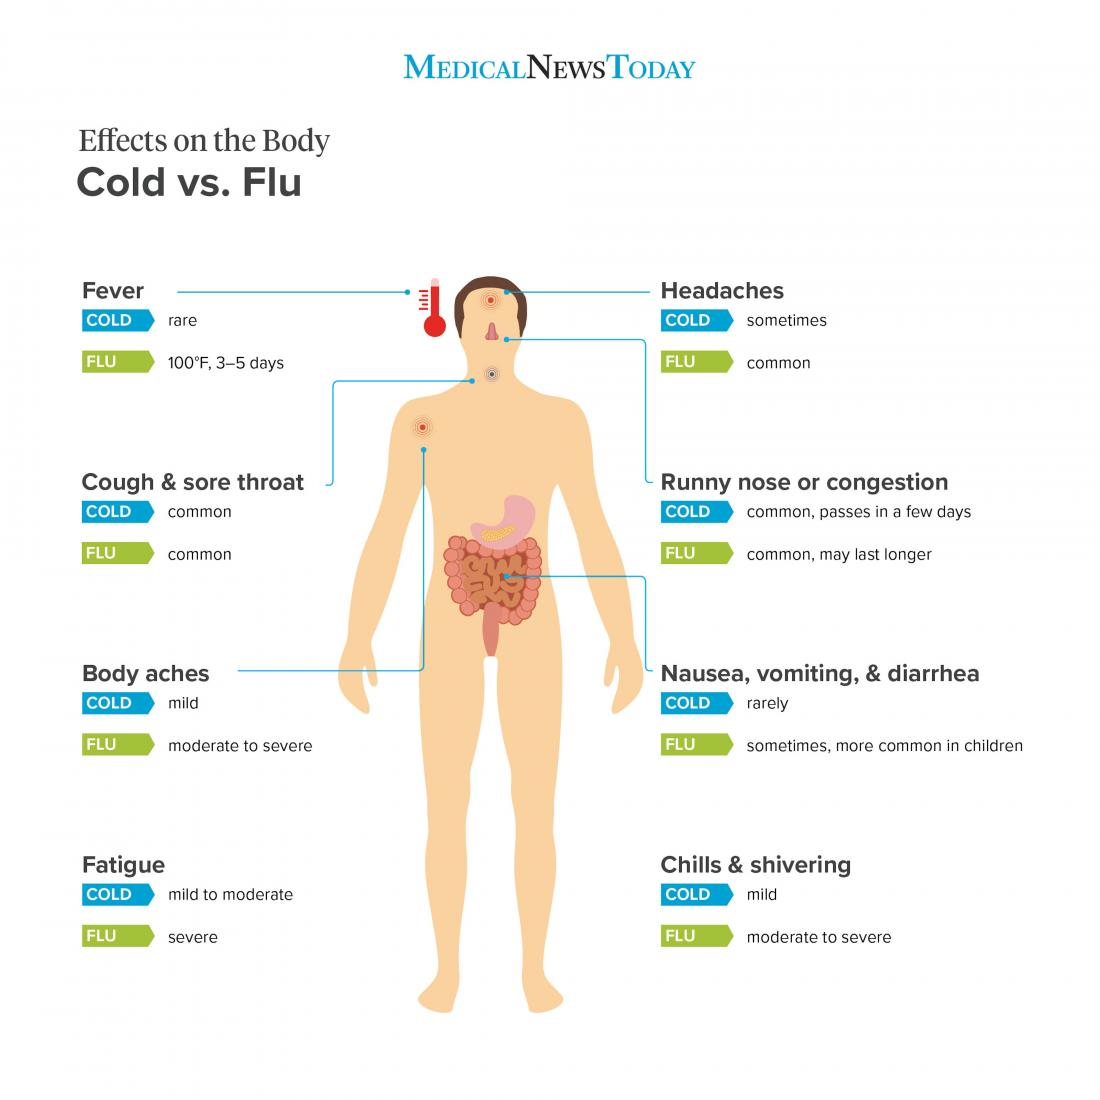 Flu and cold effects on the body